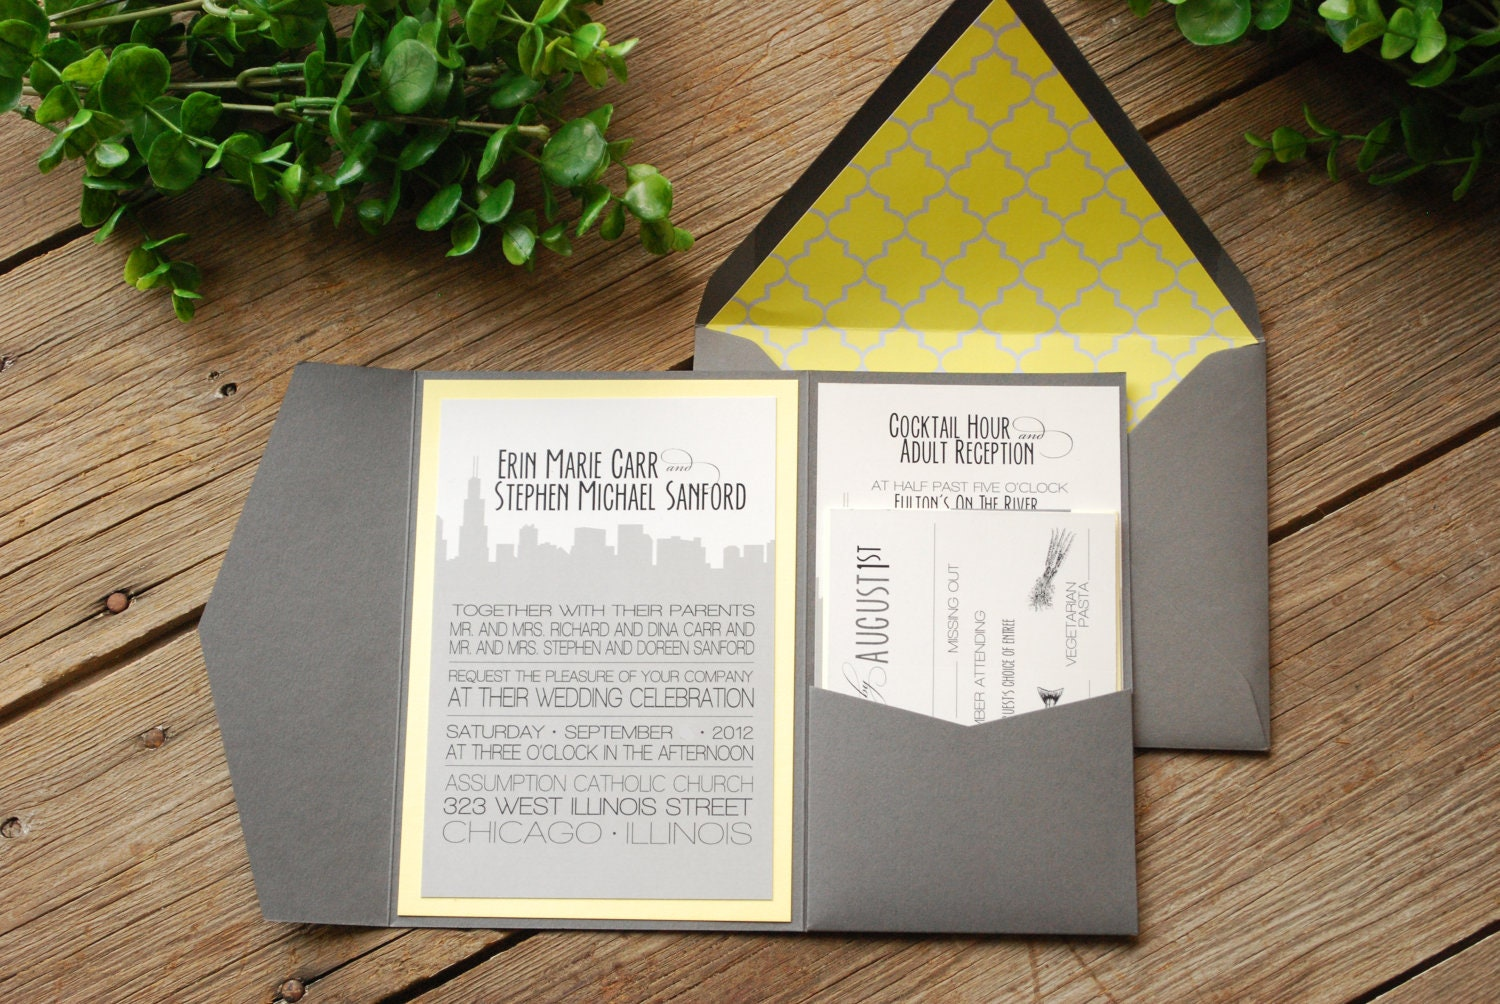 wedding invitation chicago skyline grey and yellow with, Wedding invitations